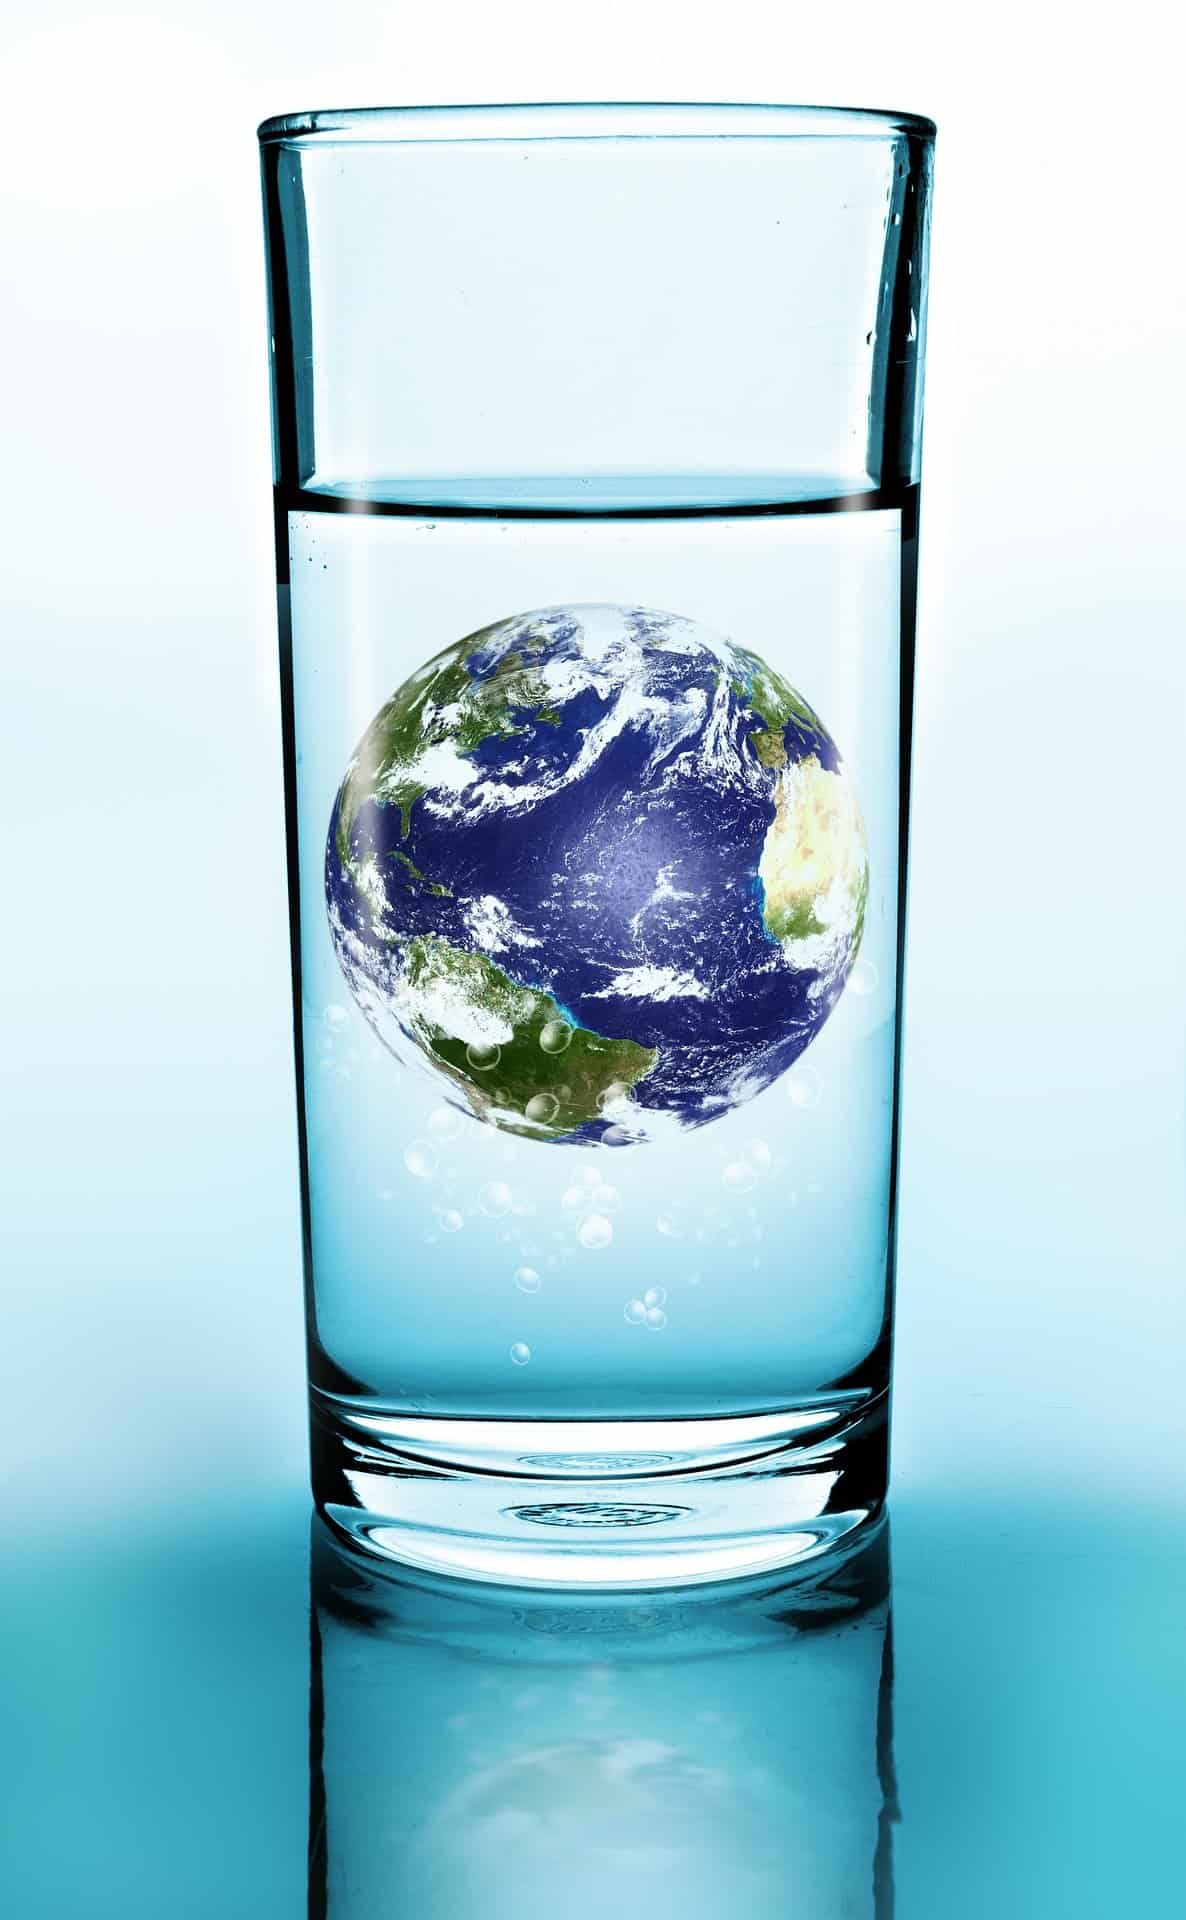 Conserve Water and Save our planet Earth